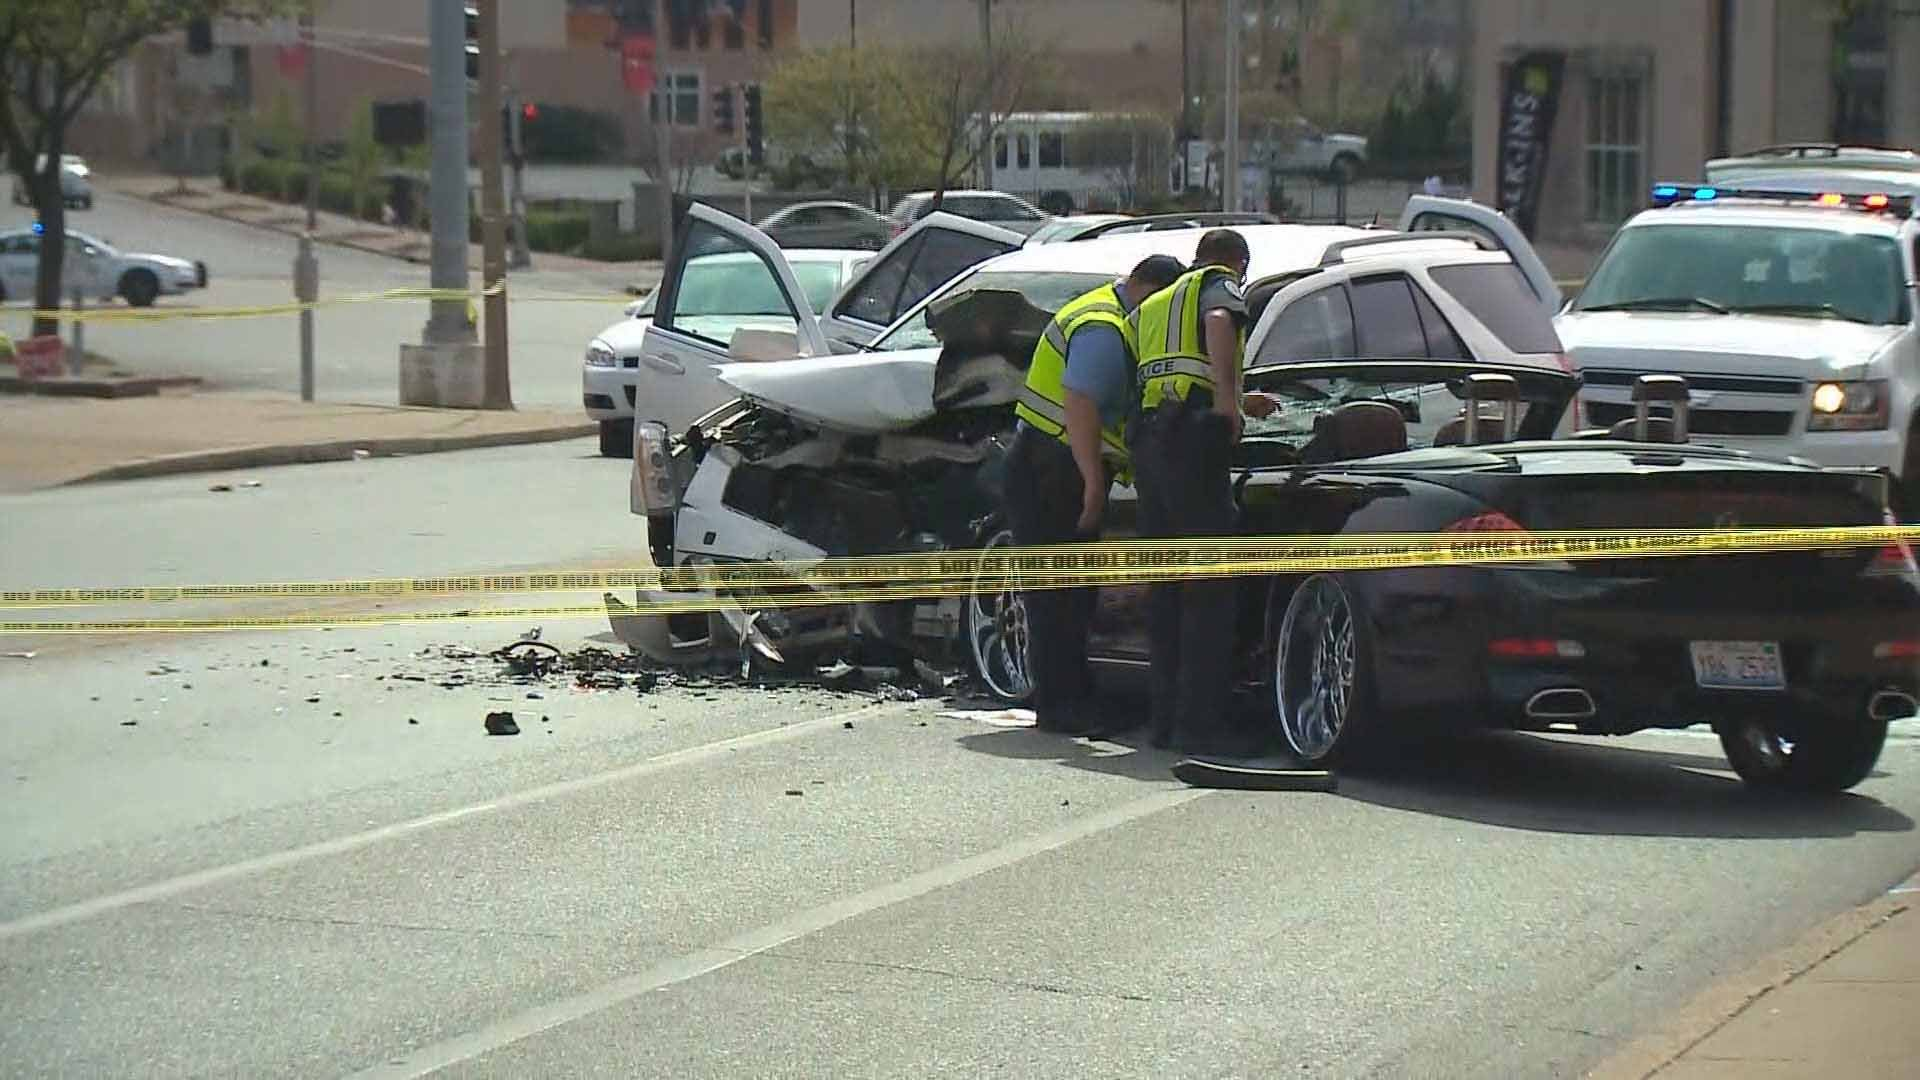 Two people were injured and one was arrested after a crash near Grand and Emily in north St. Louis Thursday. Credit: KMOV